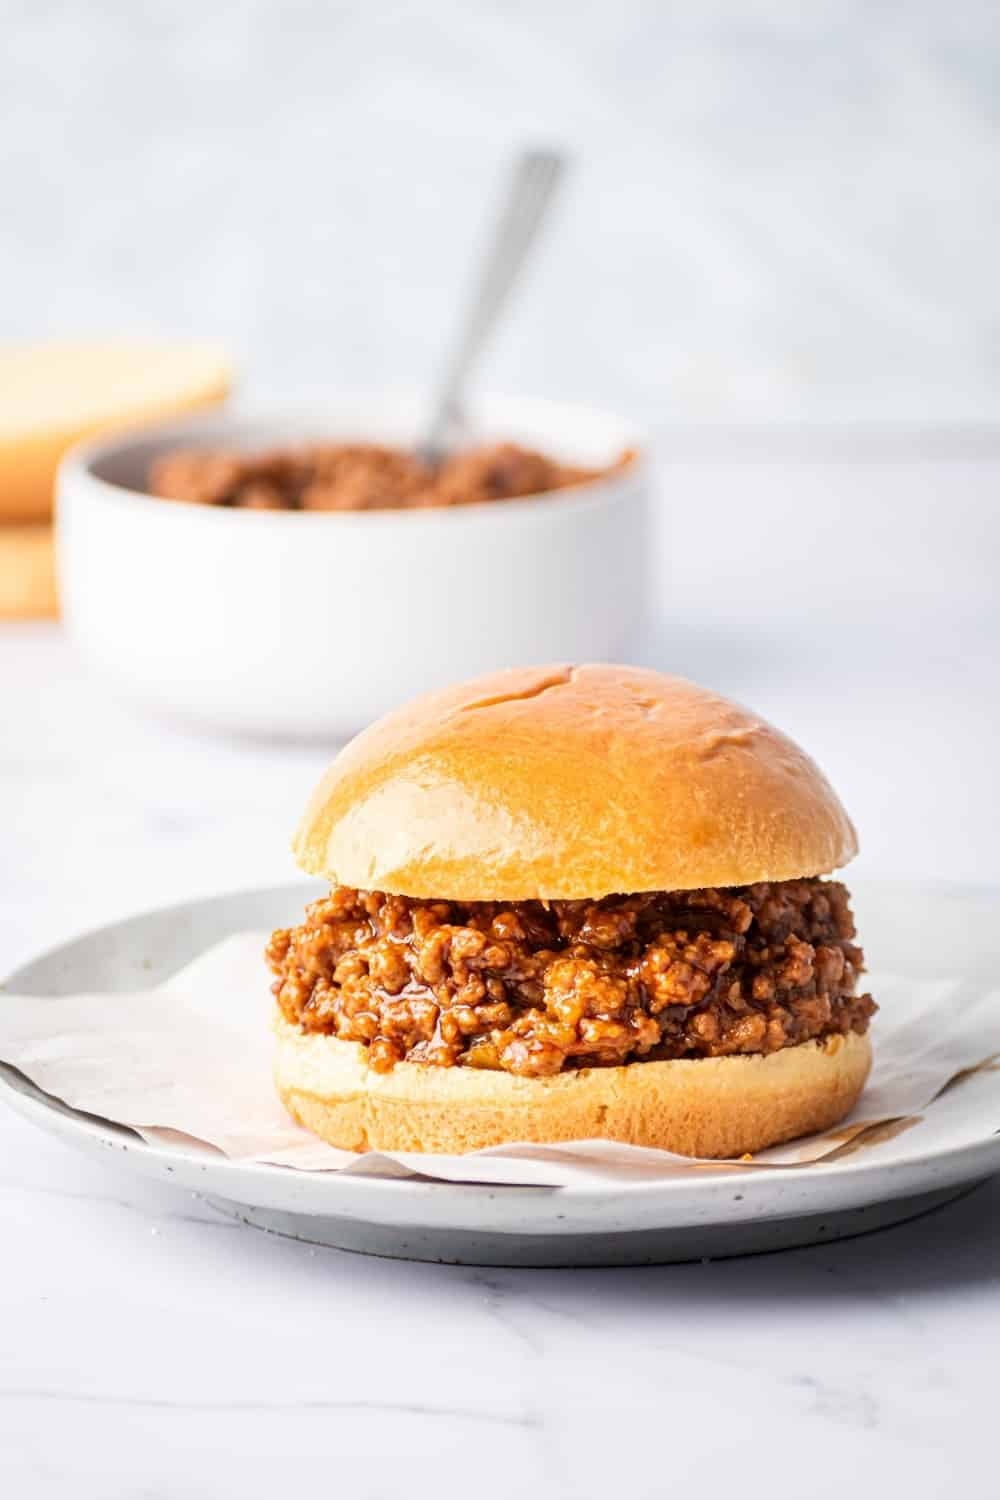 A sloppy Joe on a piece of parchment paper on a gray plate. The gray plate is on a white counter behind it is a white bowl filled with sloppy Joes.